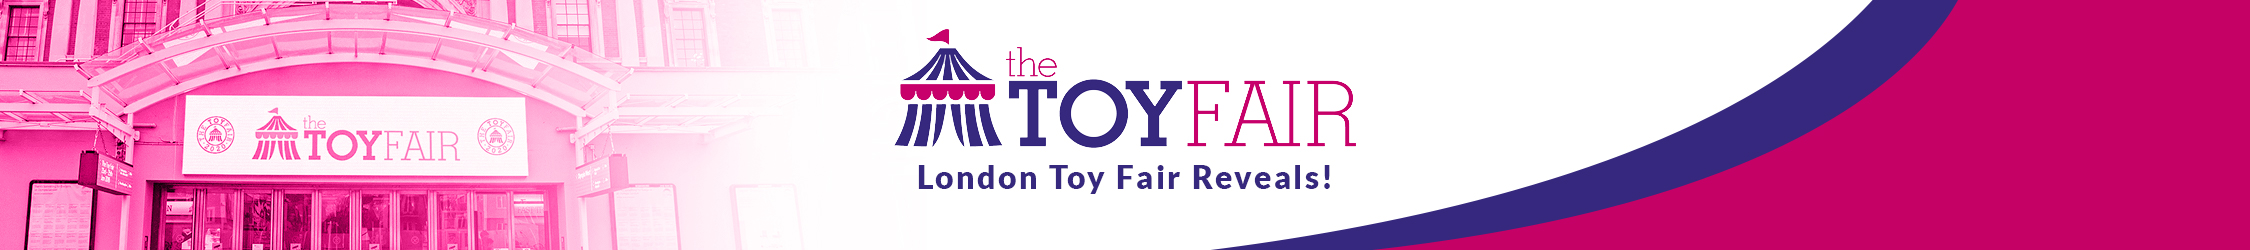 London Toy Fair 2019